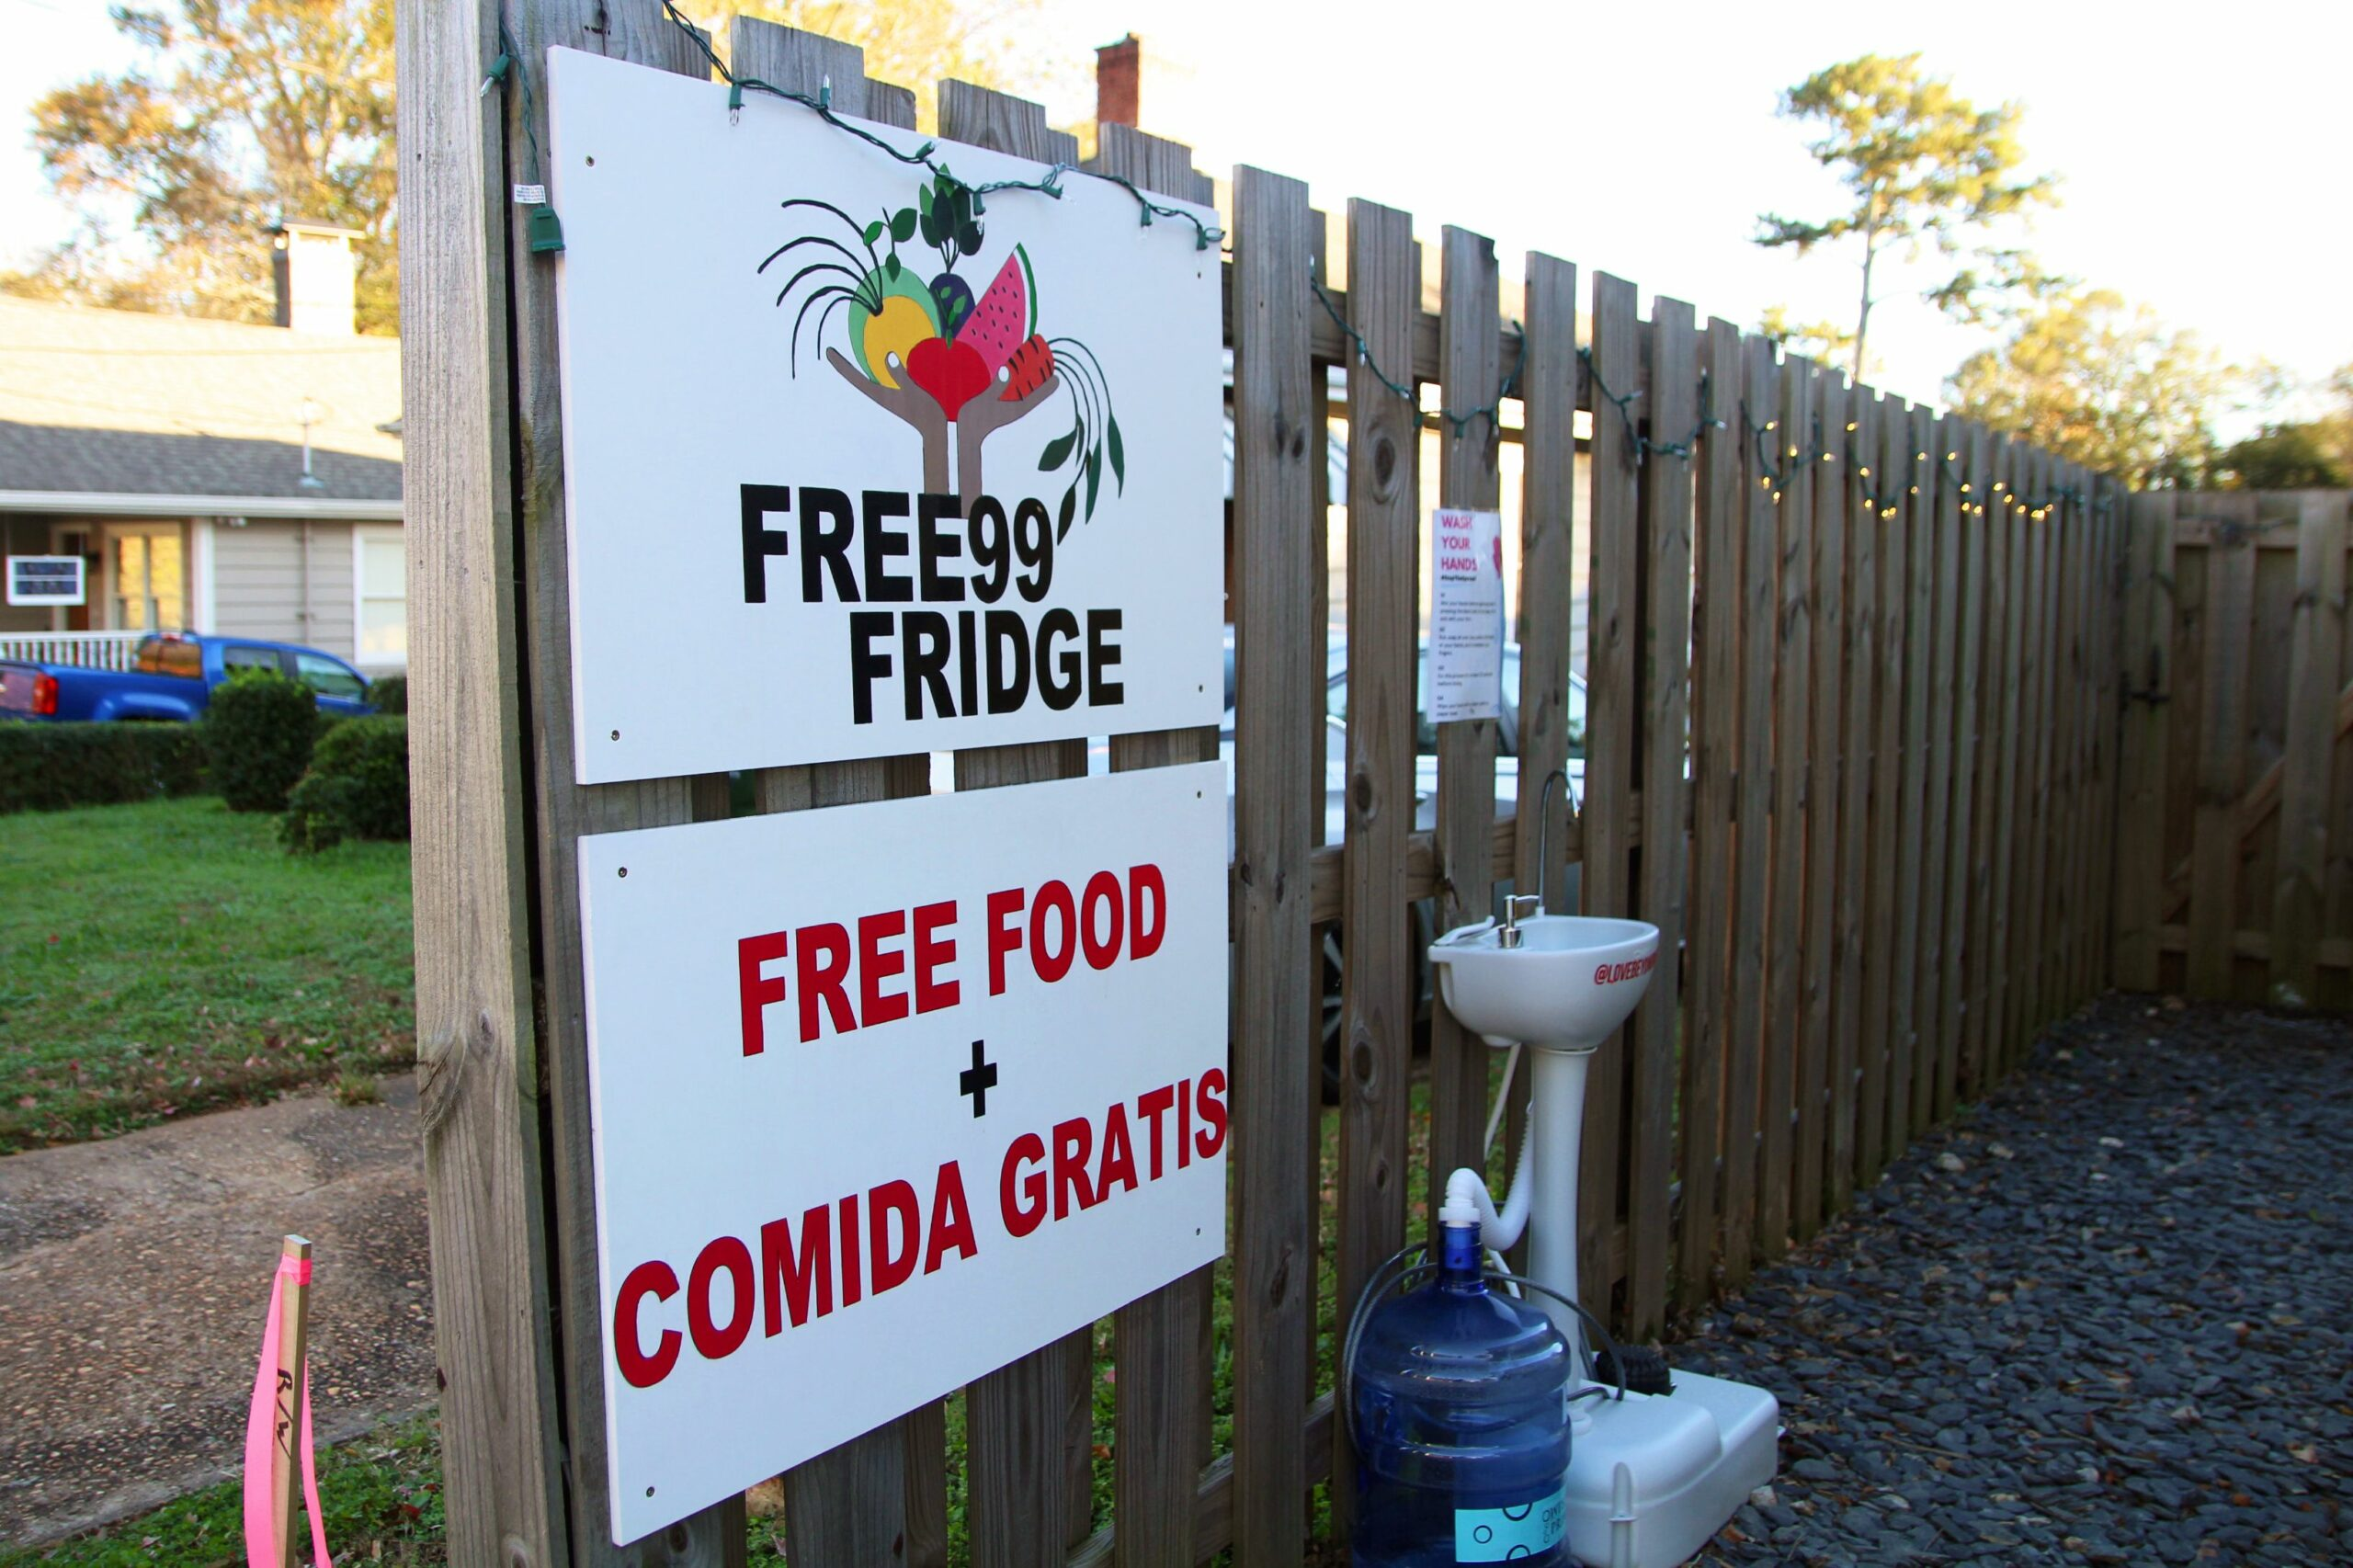 "A fence picture of the Free99Fridge logo, with a sign that says ""FREE FOOD + COMIDA GRATIS"" with a public sink in the background"